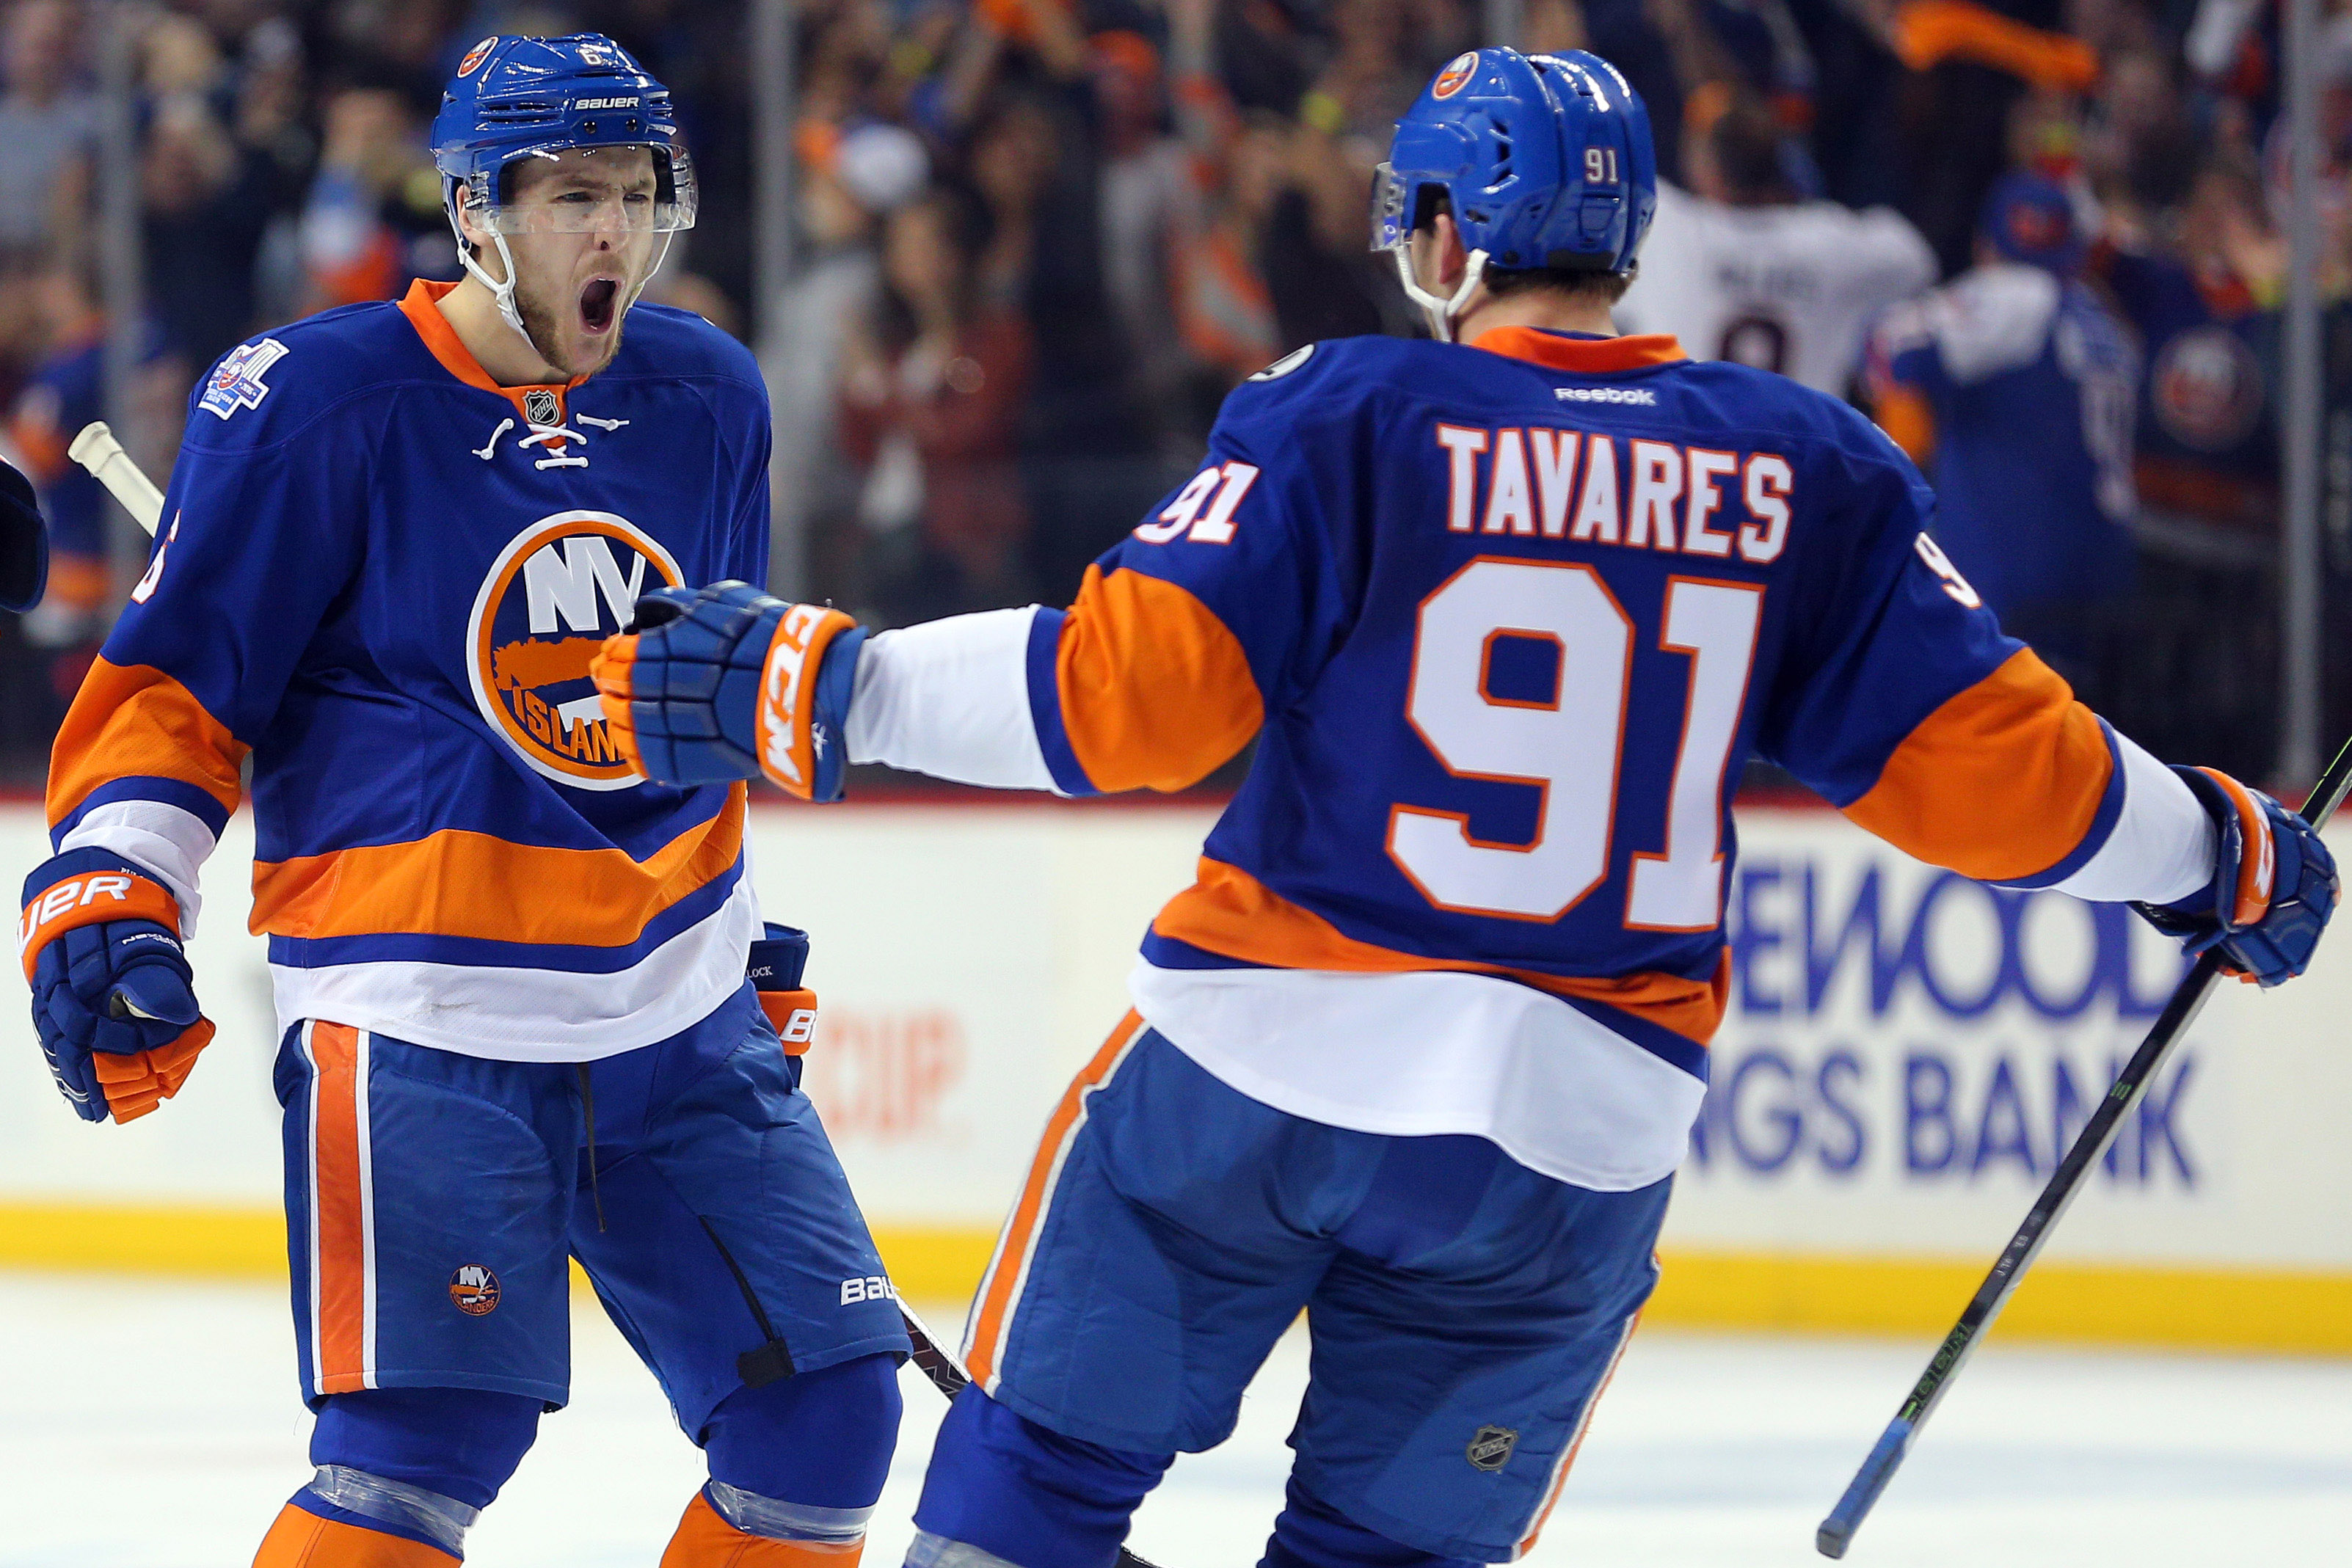 9257025-nhl-stanley-cup-playoffs-florida-panthers-at-new-york-islanders